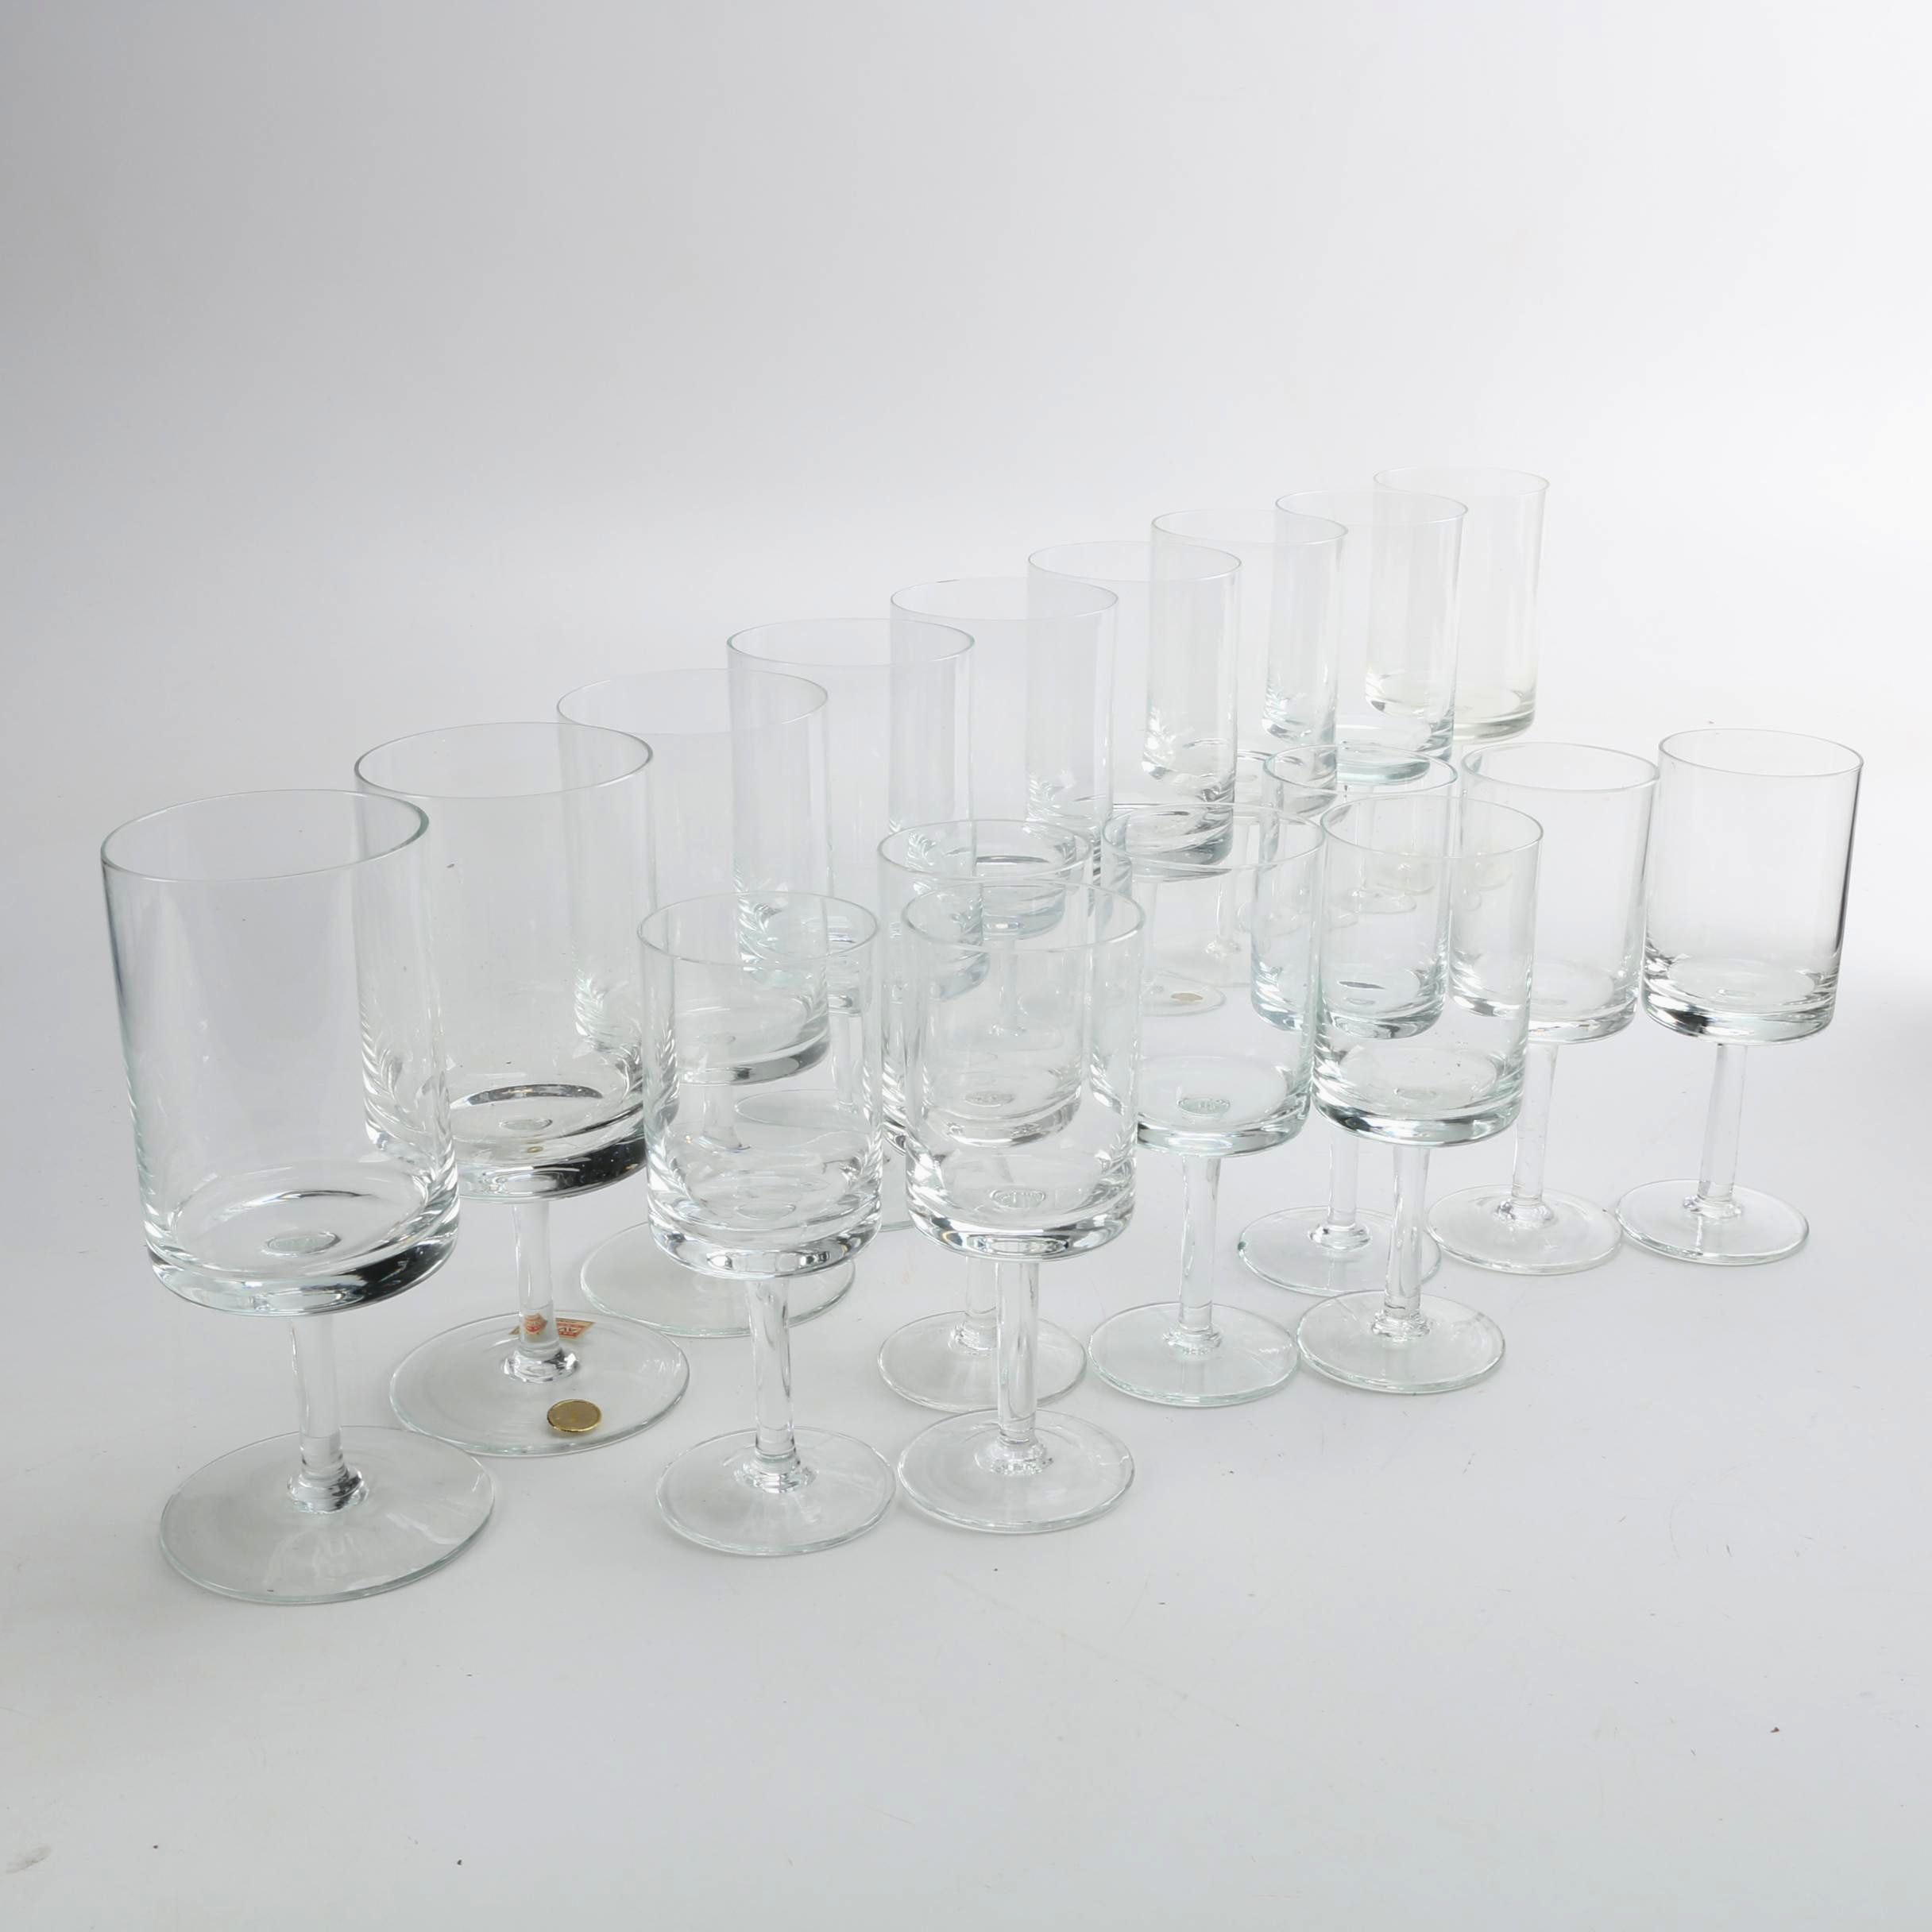 Seventeen Pieces of Glass Stemware